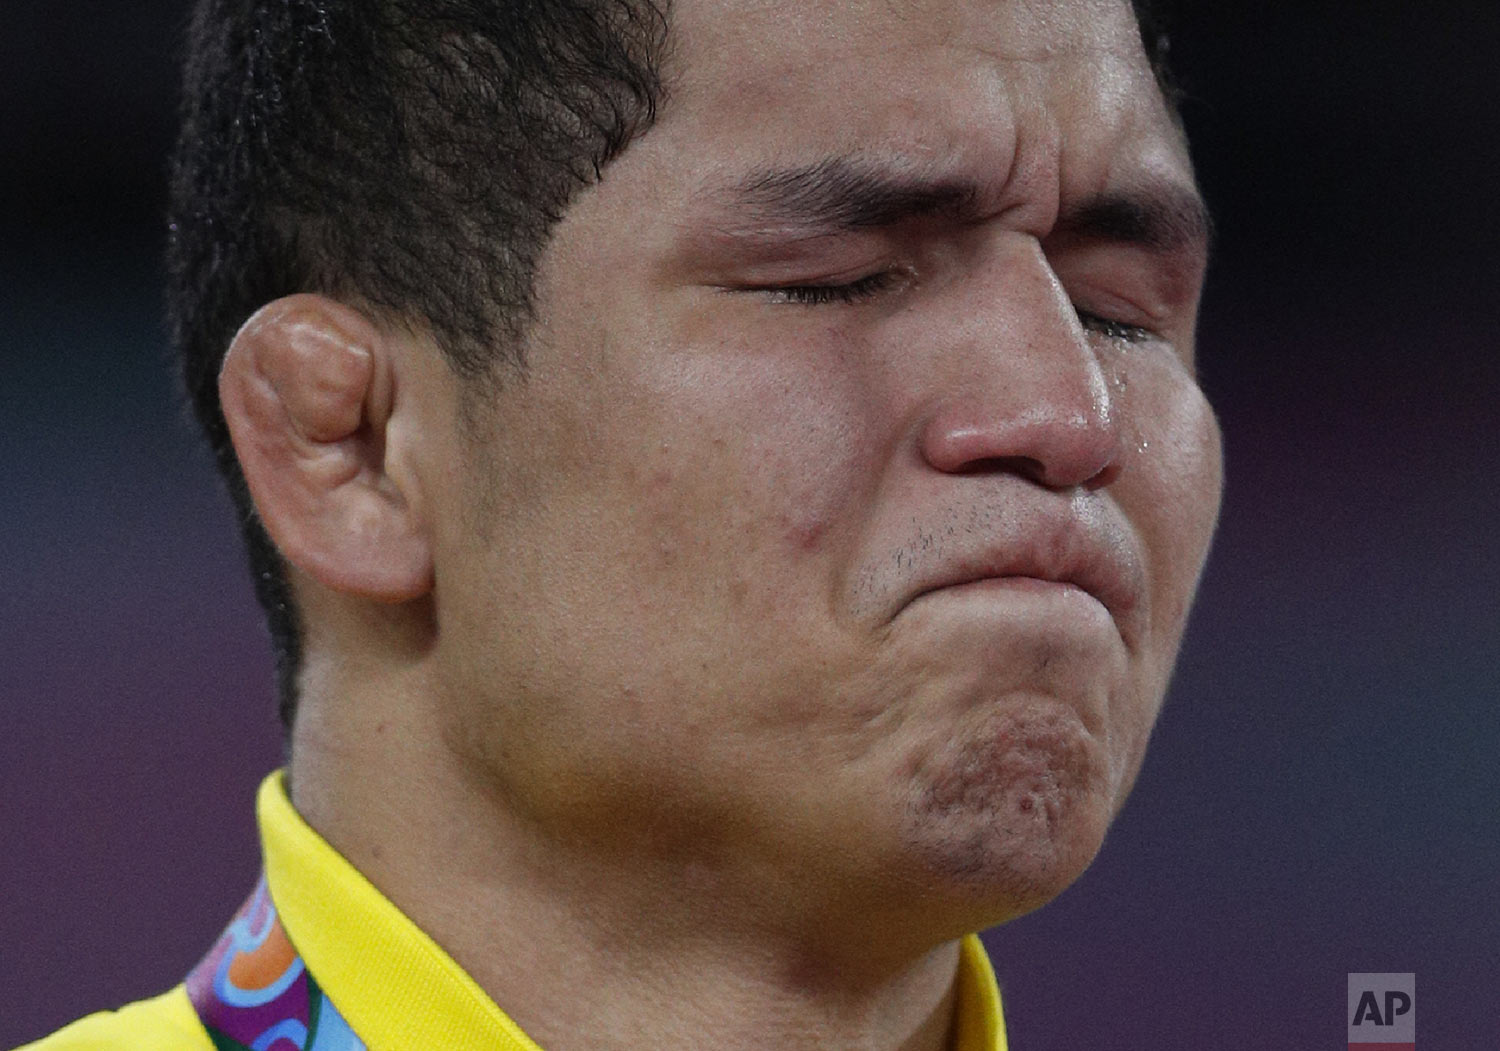 A tear runs down the face of Venezuela's Luis Avendano as he is overcome with emotion after receiving the gold medal for men's 87kg Greco-Roman wrestling at the Pan American Games in Lima, Peru, Wednesday, Aug. 7, 2019. (AP Photo/Rebecca Blackwell)